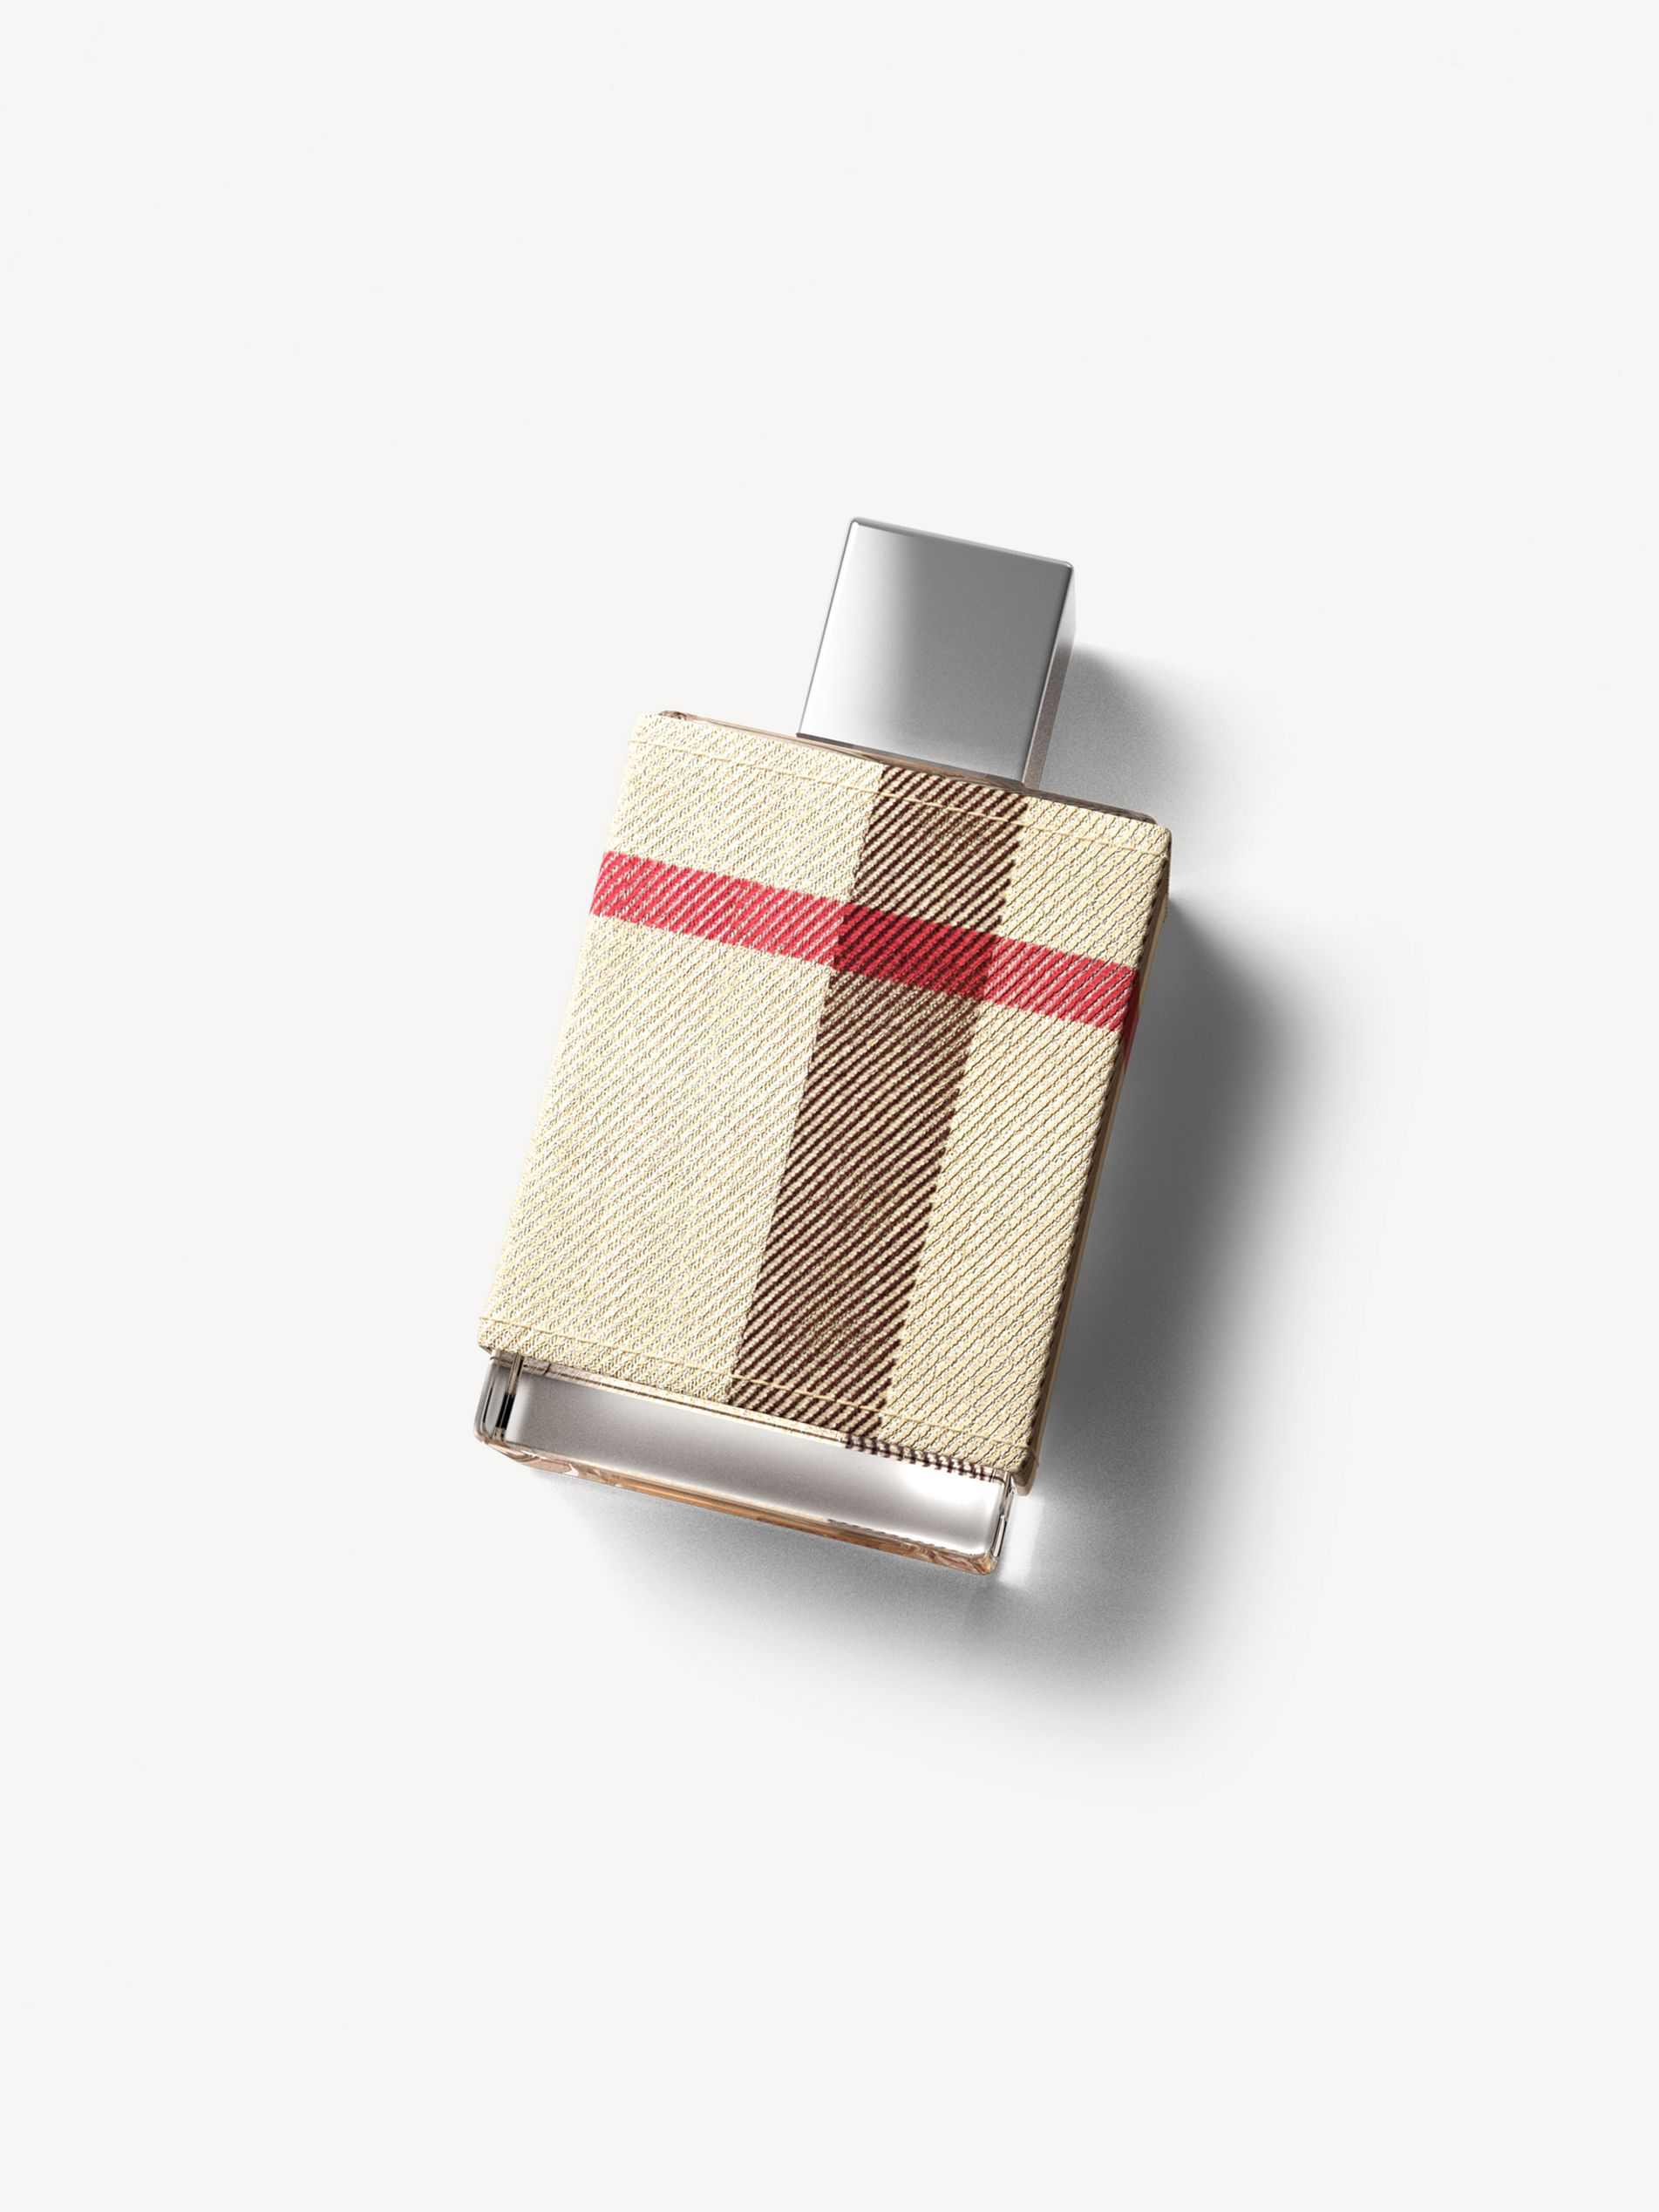 Burberry London 博柏利伦敦女士香水 50ml 产品图片01